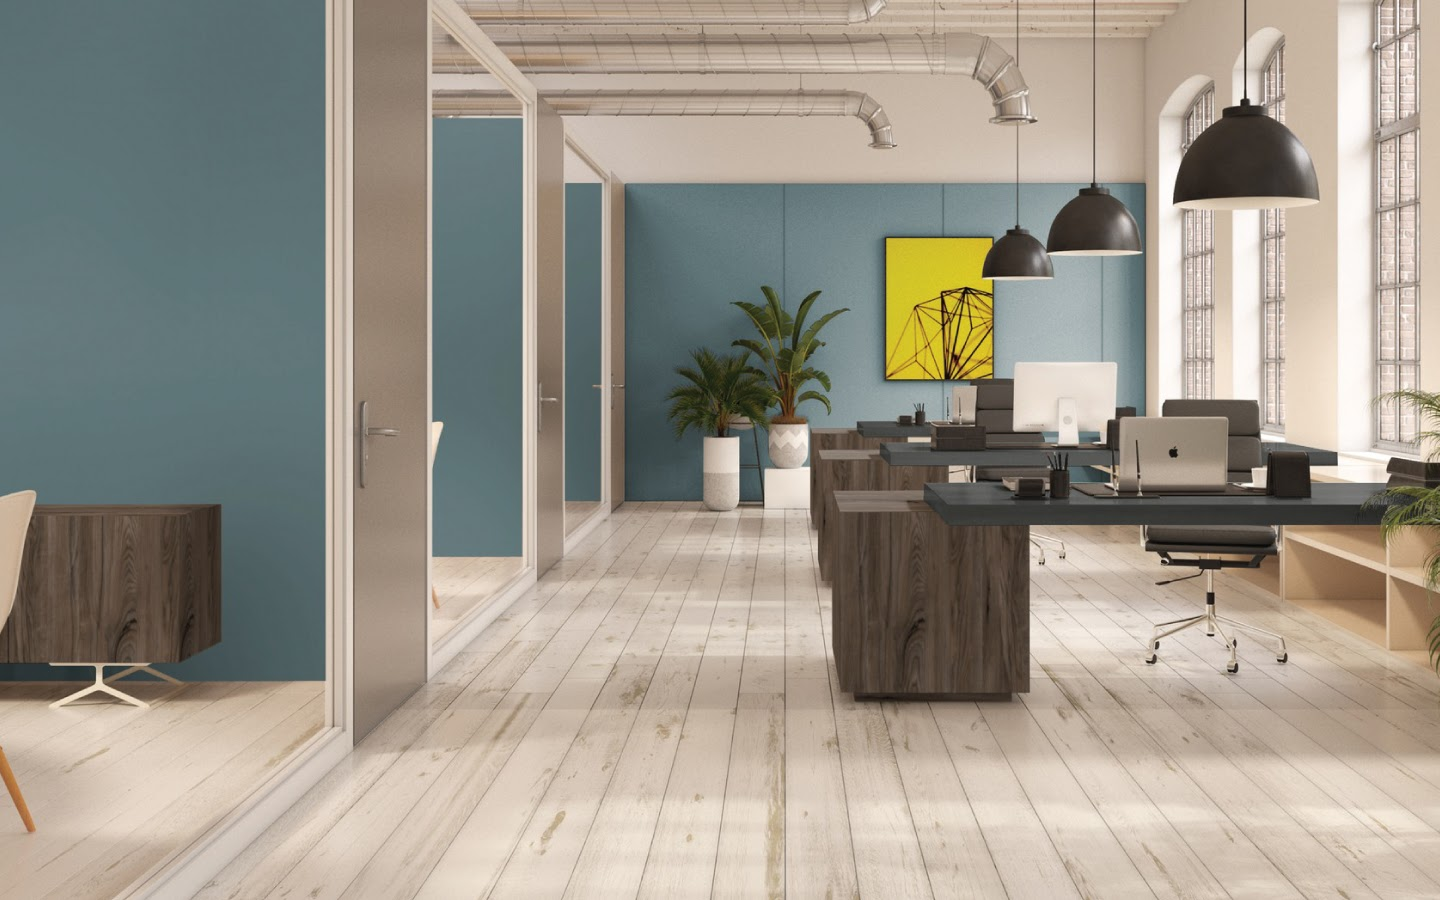 Office planning: accommodating the new normal